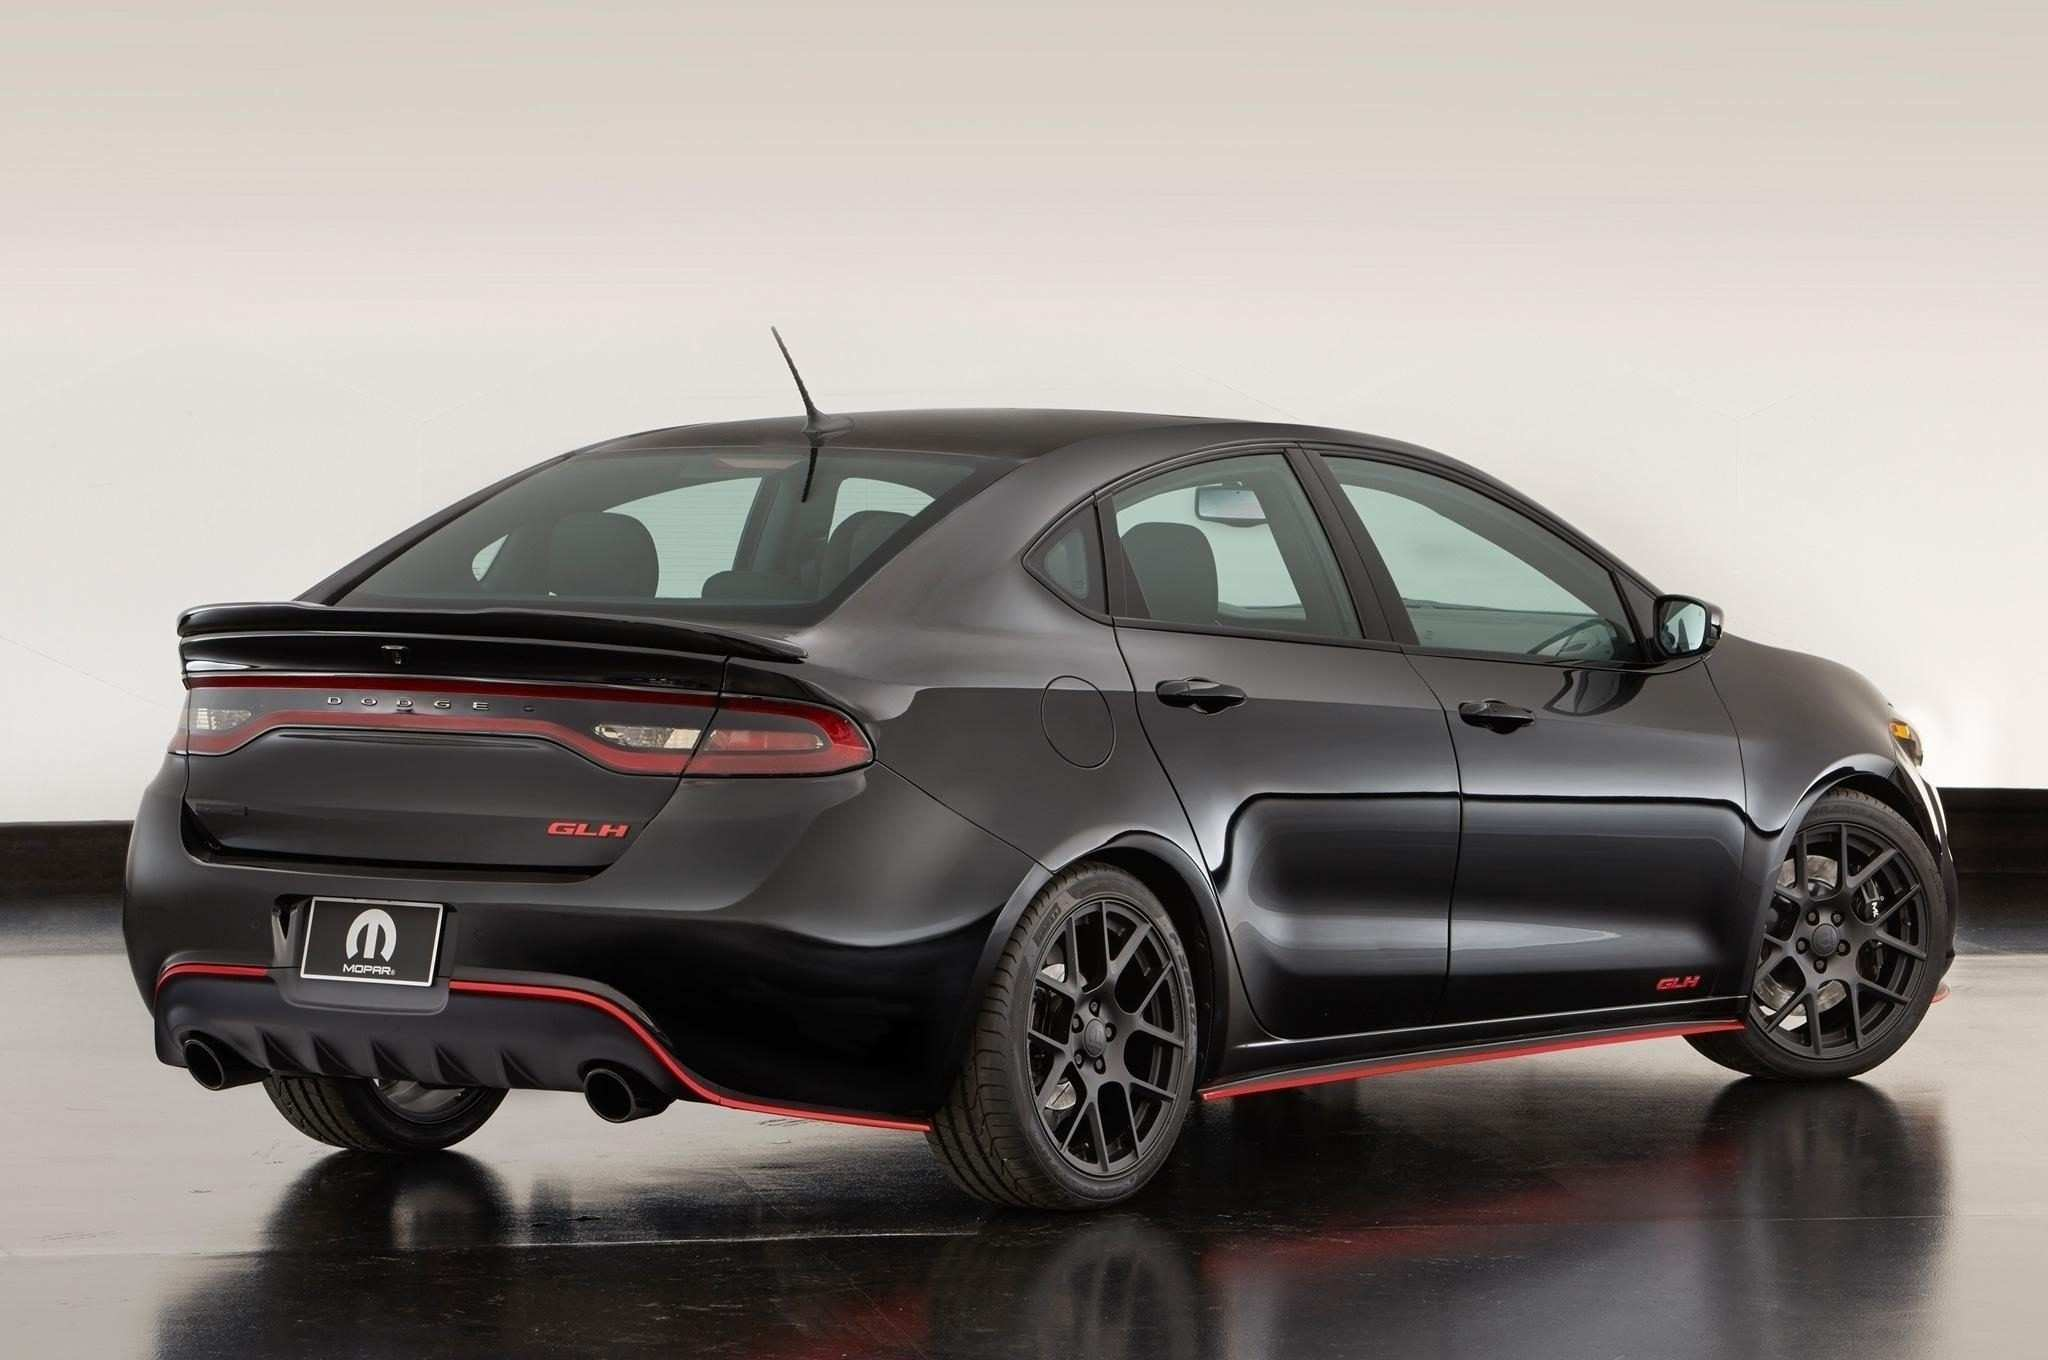 13 All New 2020 Dodge Dart Configurations by 2020 Dodge Dart